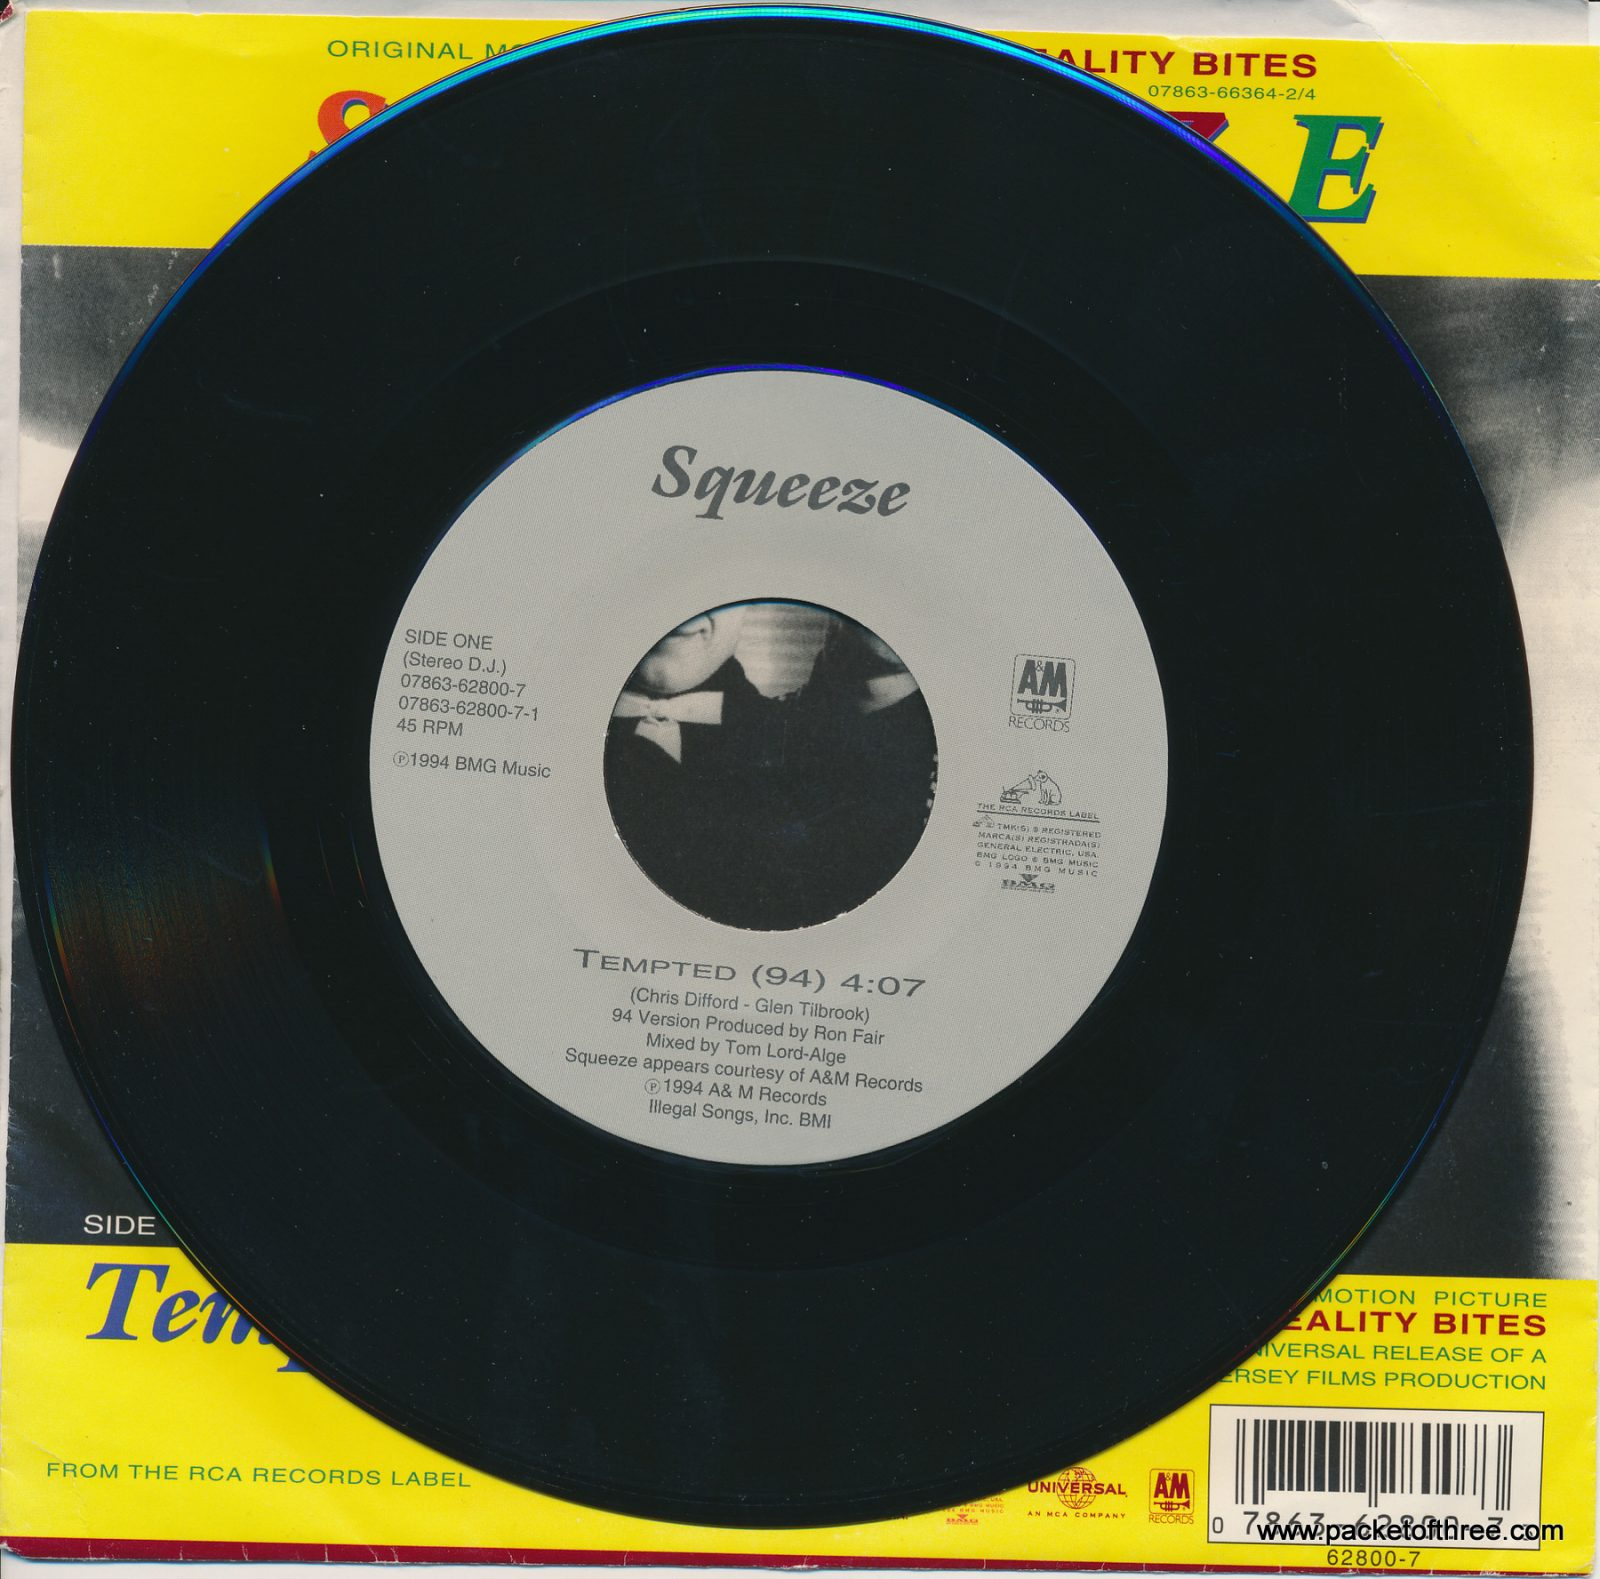 "Tempted 94 - USA - 7"" - picture sleeve"